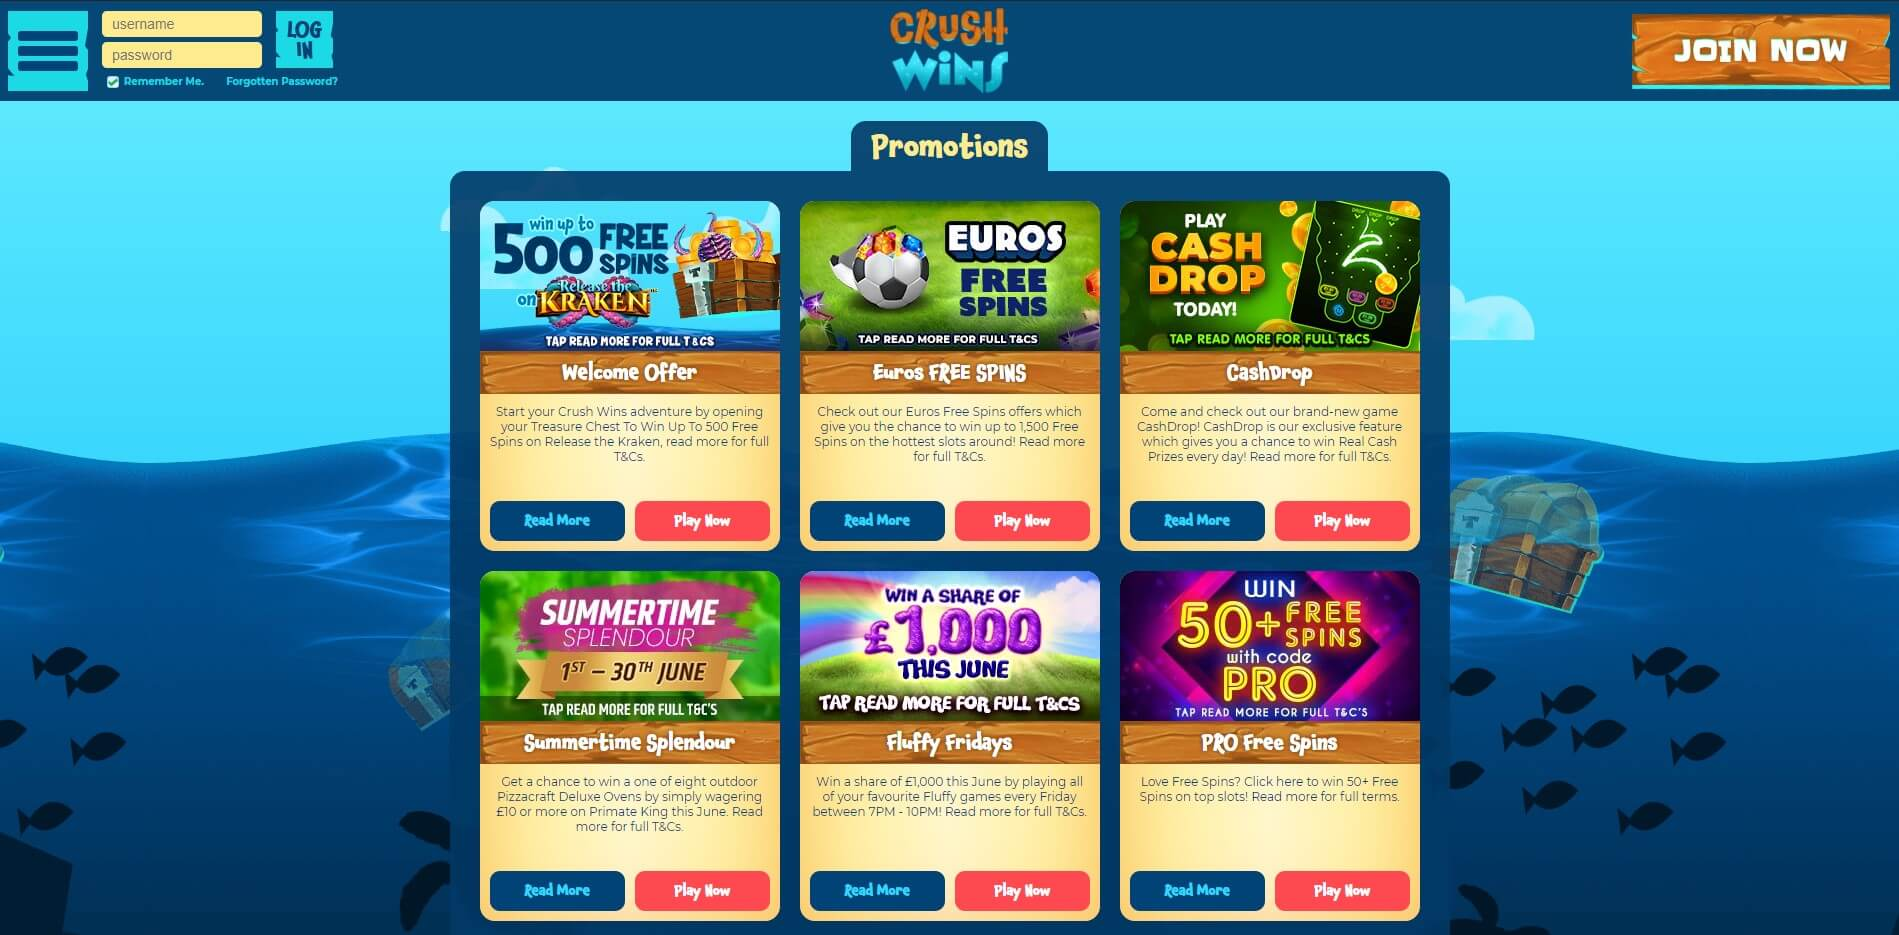 Promotions at CrushWins Casino